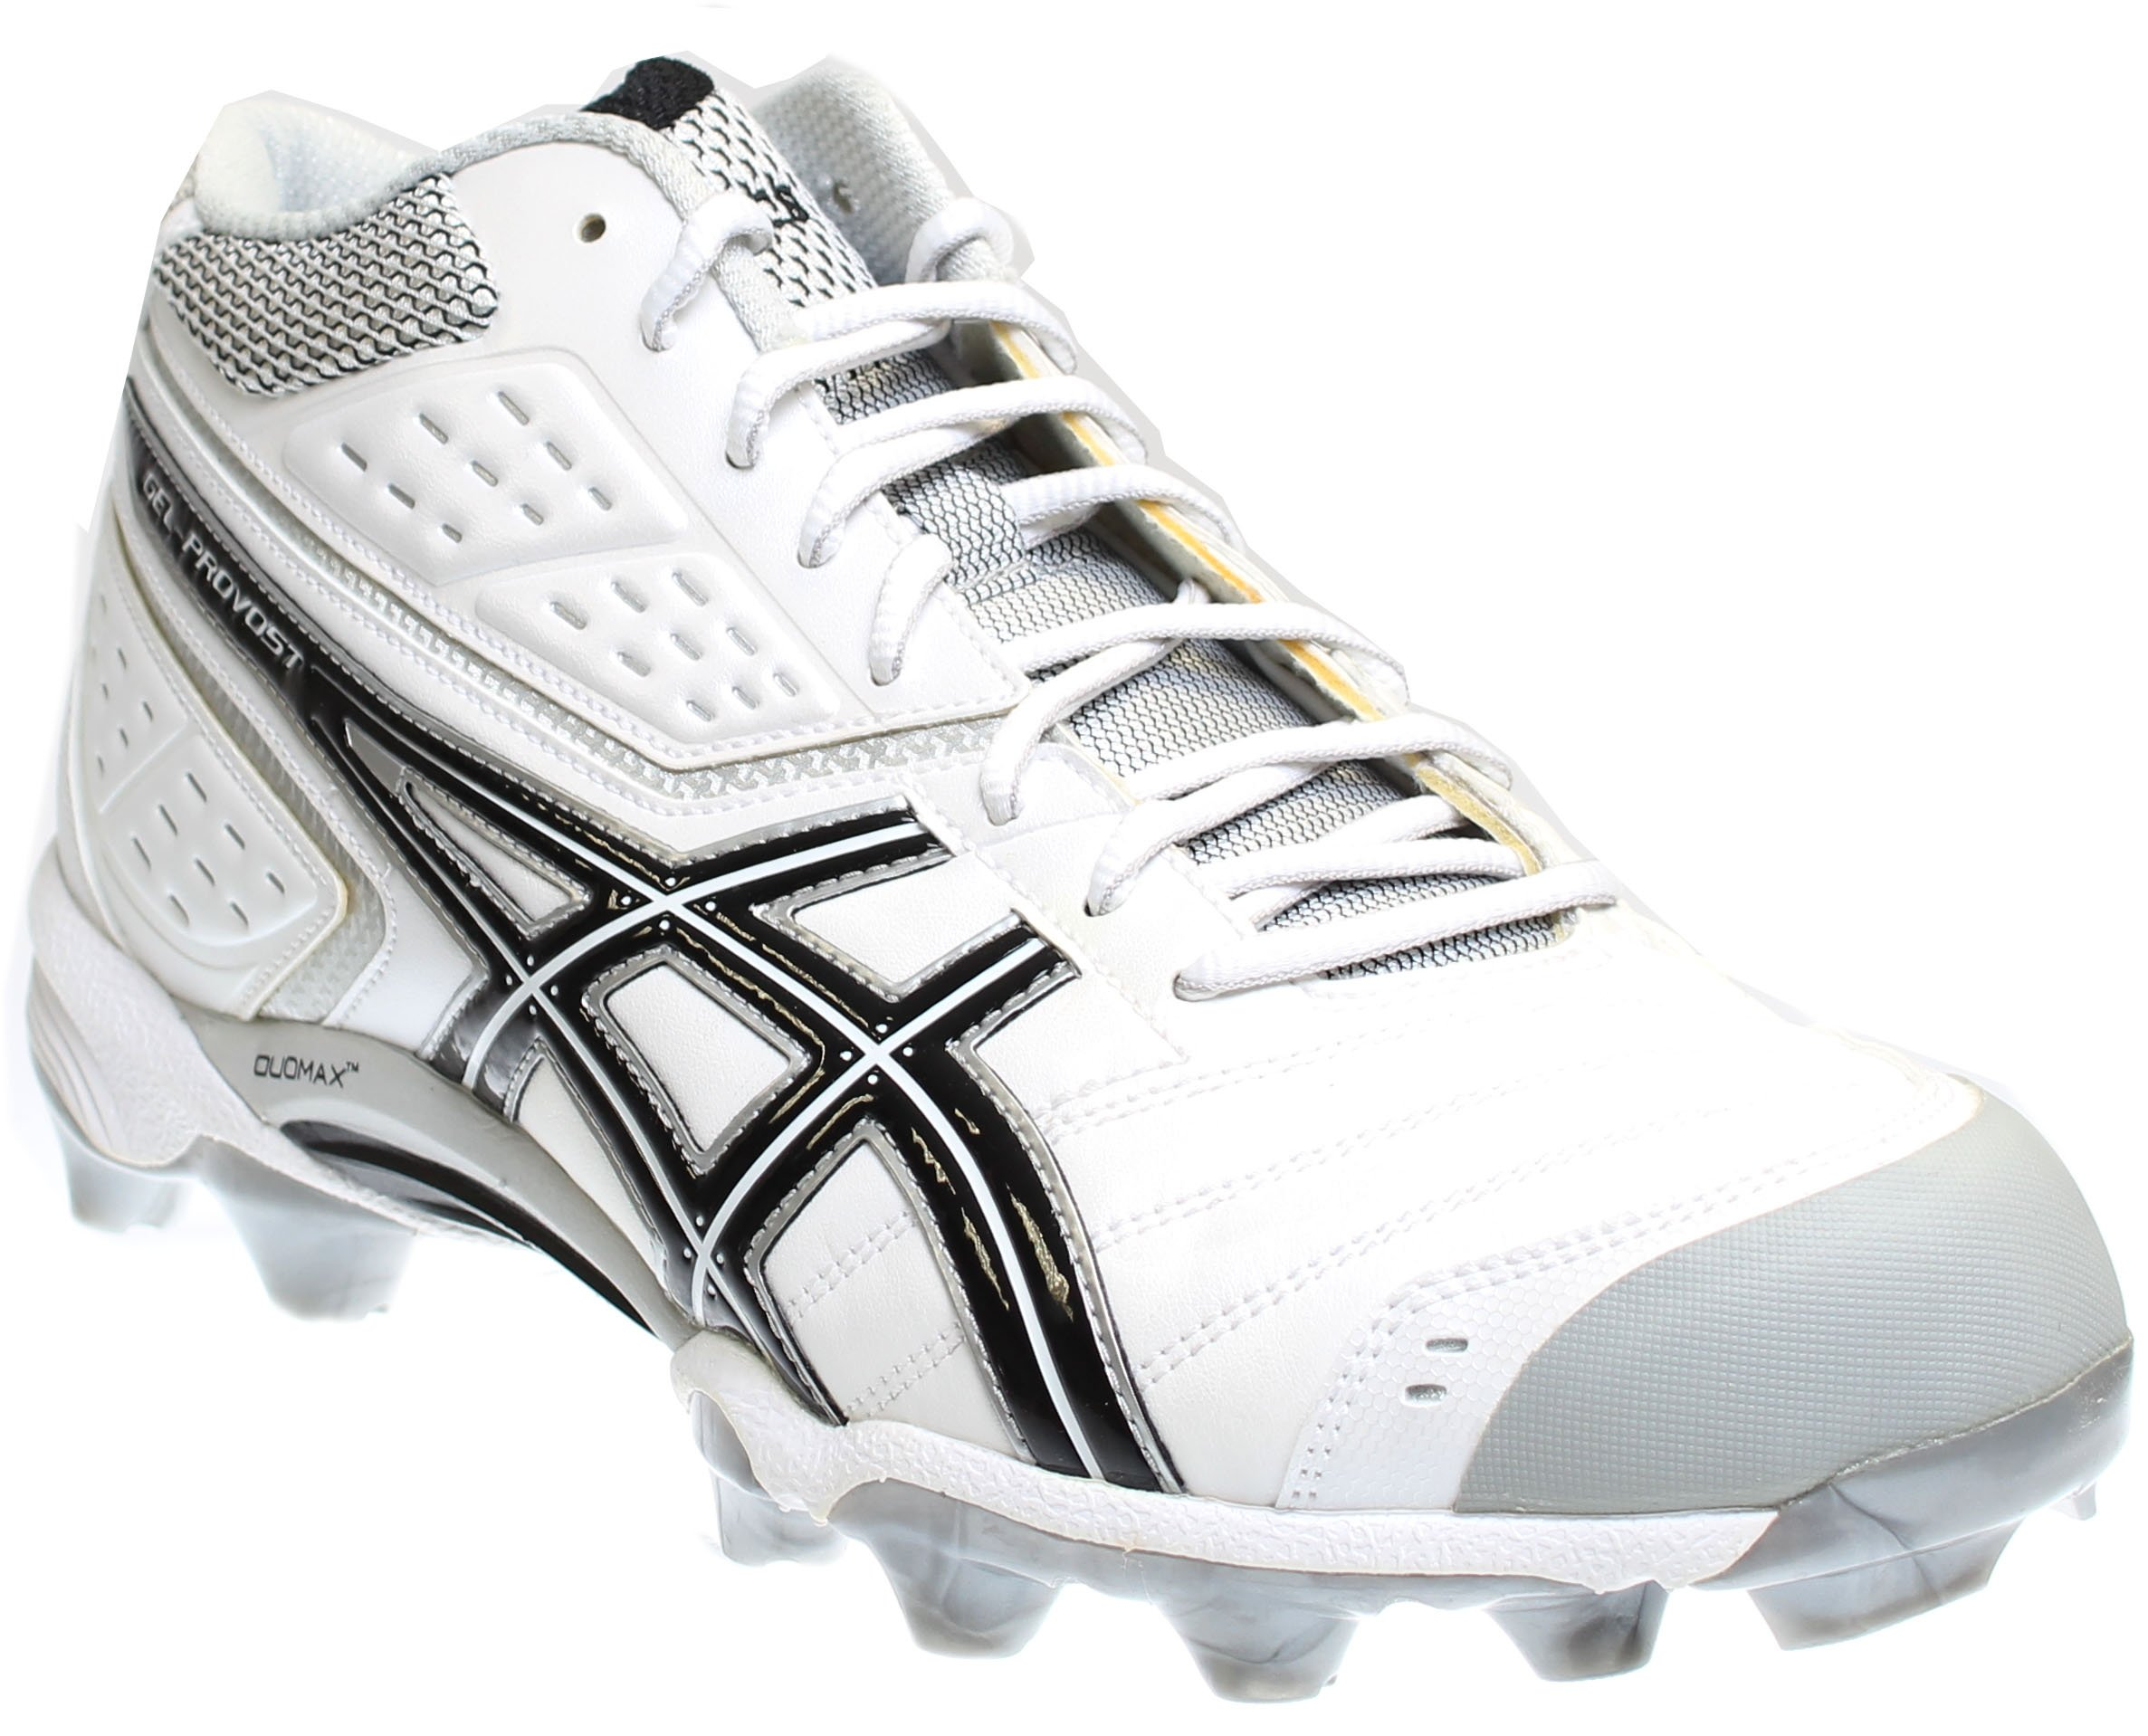 ASICS Men's GEL-Provost Lacrosse Cleat,White/Black/Silver,10.5 M US by ASICS